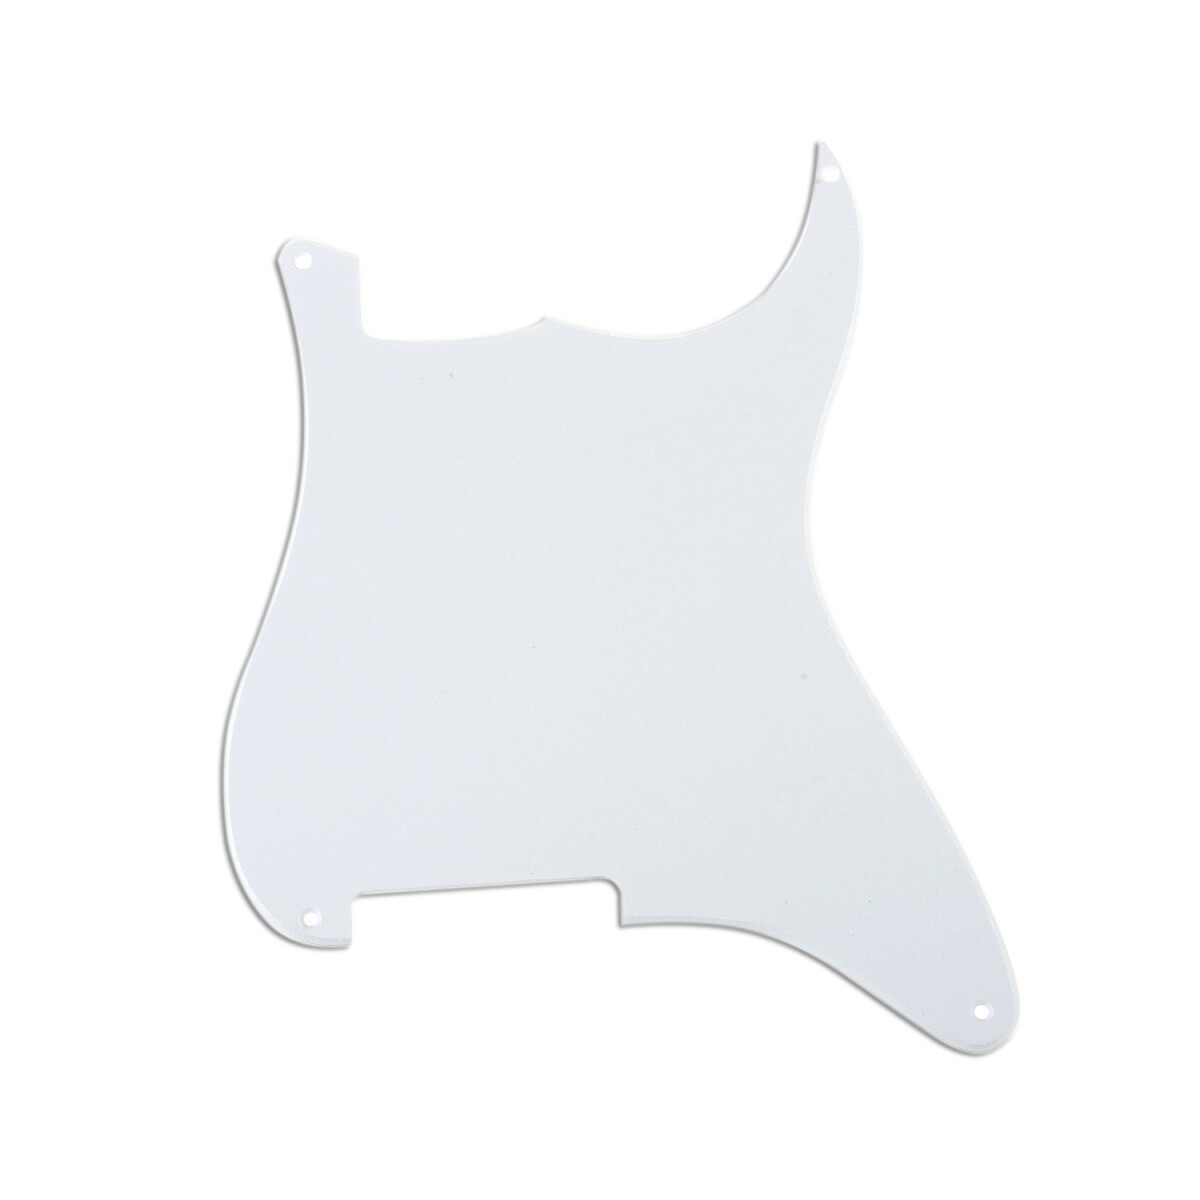 Brio Blank 4 hole outline pickguard for Strat®, 1 Ply White